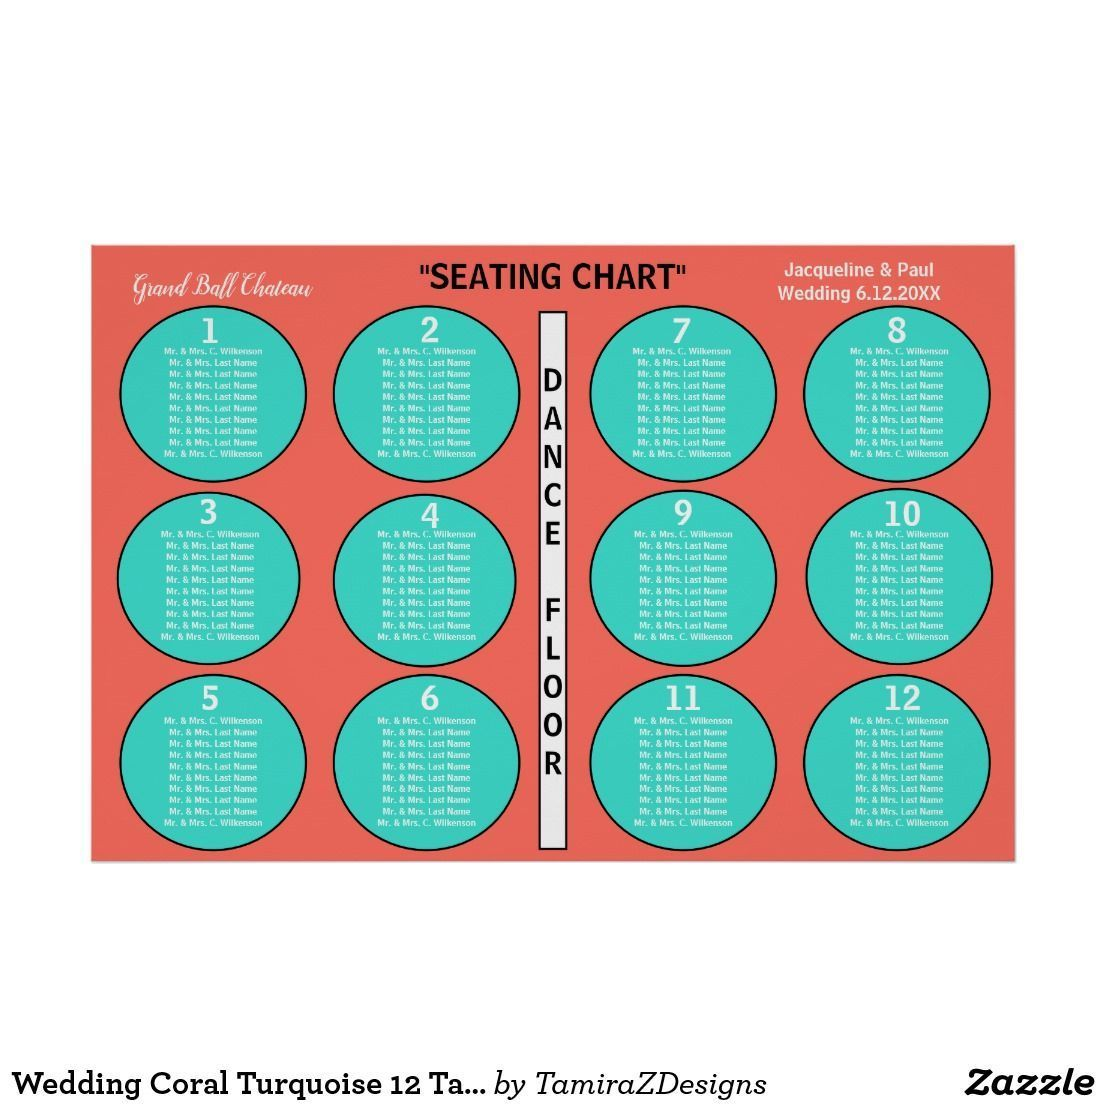 Wedding Coral Turquoise 12 Table Seating Chart | Zazzle.com #turquoisecoralweddings Pretty bright Coral Turquoise Wedding Summertime Beach Destination Theme.  12 Table Seating Chart Poster to Seat 10 or Less Guests at Each Table in Alphabetical Order.  Personalize it.  Original designs © TamiraZDesigns.  #bride #reception #wedding #coralturquoisewedding #coralwedding #seatingchart #turquoisecoralweddings Wedding Coral Turquoise 12 Table Seating Chart | Zazzle.com #turquoisecoralweddings Pretty #turquoisecoralweddings